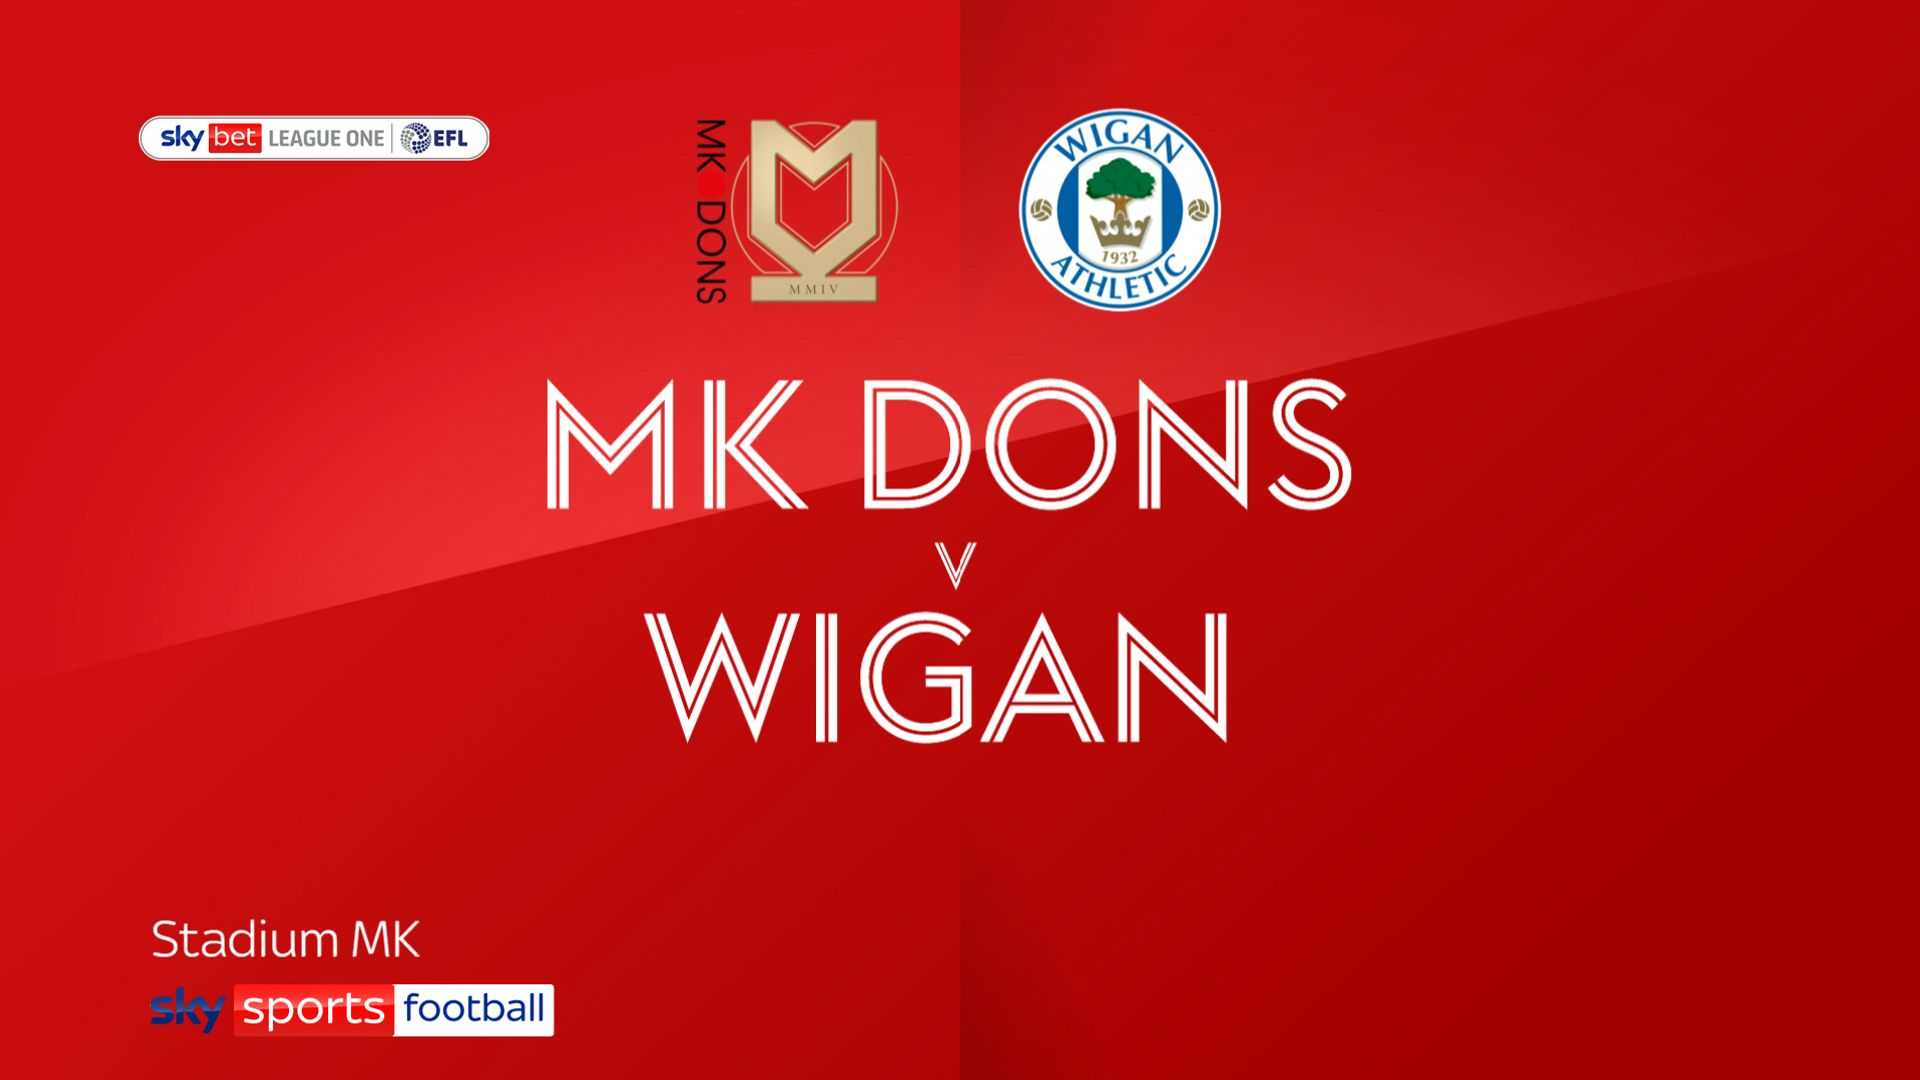 MK Dons see off Wigan